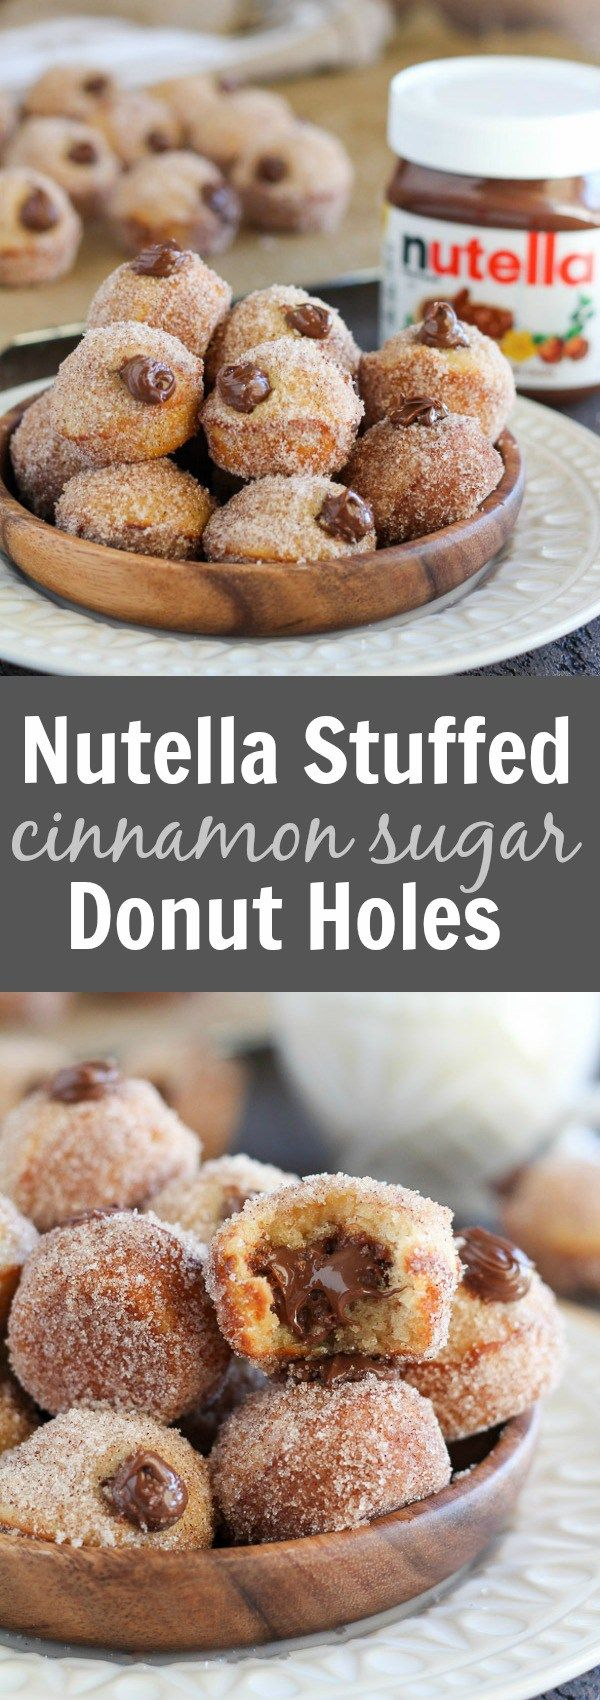 Nutella Stuffed Cinnamon Sugar Donut Holes – Baked vanilla donut holes coated in cinnamon sugar and filled with creamy Nutella. No